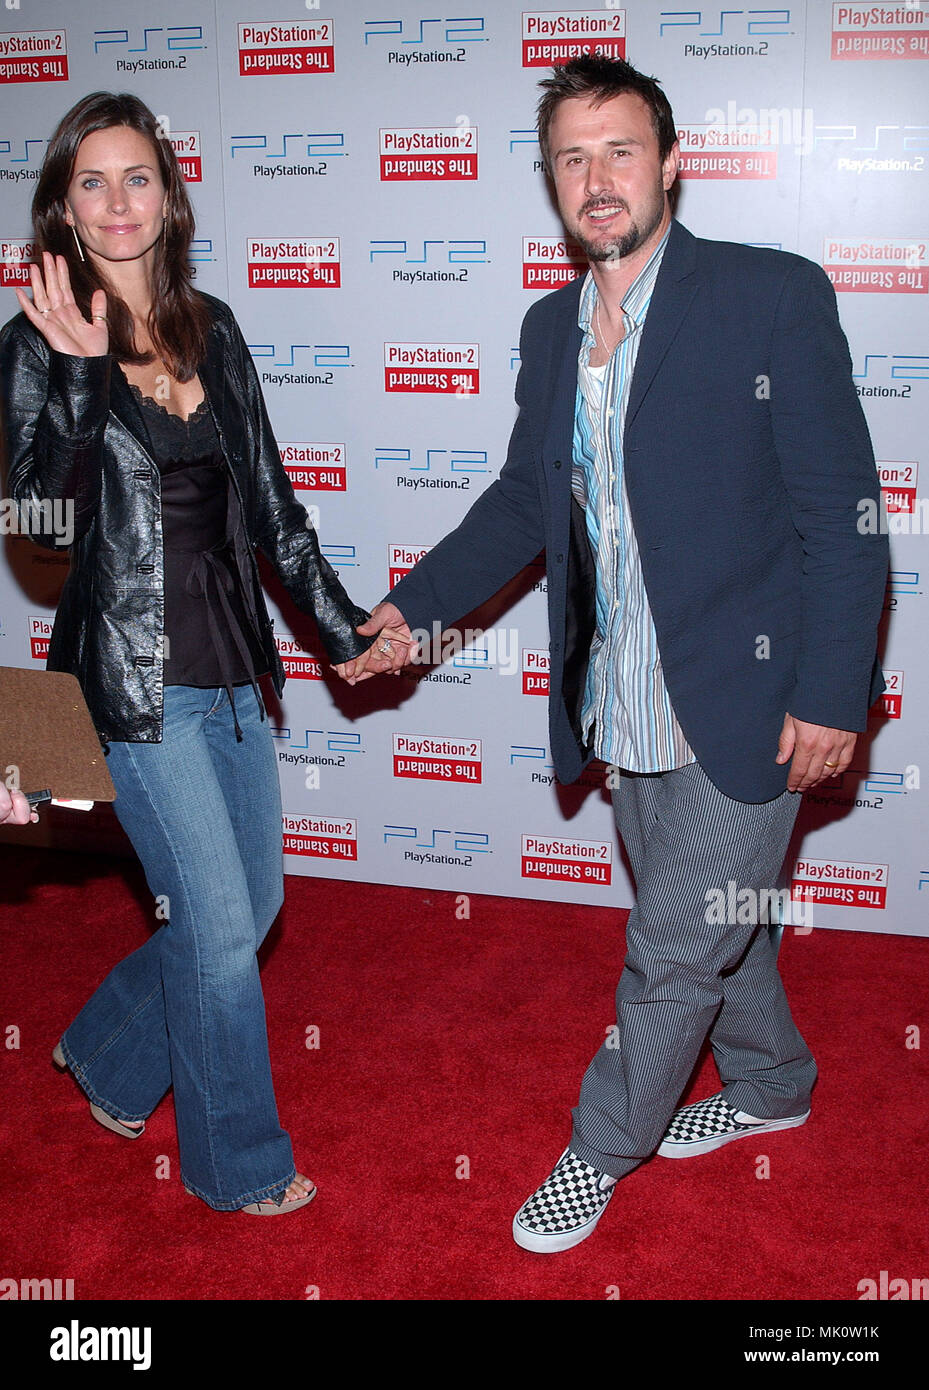 Courteney Cox and David Arquette arriving at the grand opening of the Play Station 2 Hotel in downtown Los Angeles. May 21, 2002.           -            CoxCourtney_ArquetteD01.JPG           -              CoxCourtney_ArquetteD01.JPGCoxCourtney_ArquetteD01  Event in Hollywood Life - California,  Red Carpet Event, Vertical, USA, Film Industry, Celebrities,  Photography, Bestof, Arts Culture and Entertainment, Topix Celebrities fashion /  from the Red Carpet-, Vertical, Best of, Hollywood Life, Event in Hollywood Life - California,  Red Carpet , USA, Film Industry, Celebrities,  movie celebritie - Stock Image